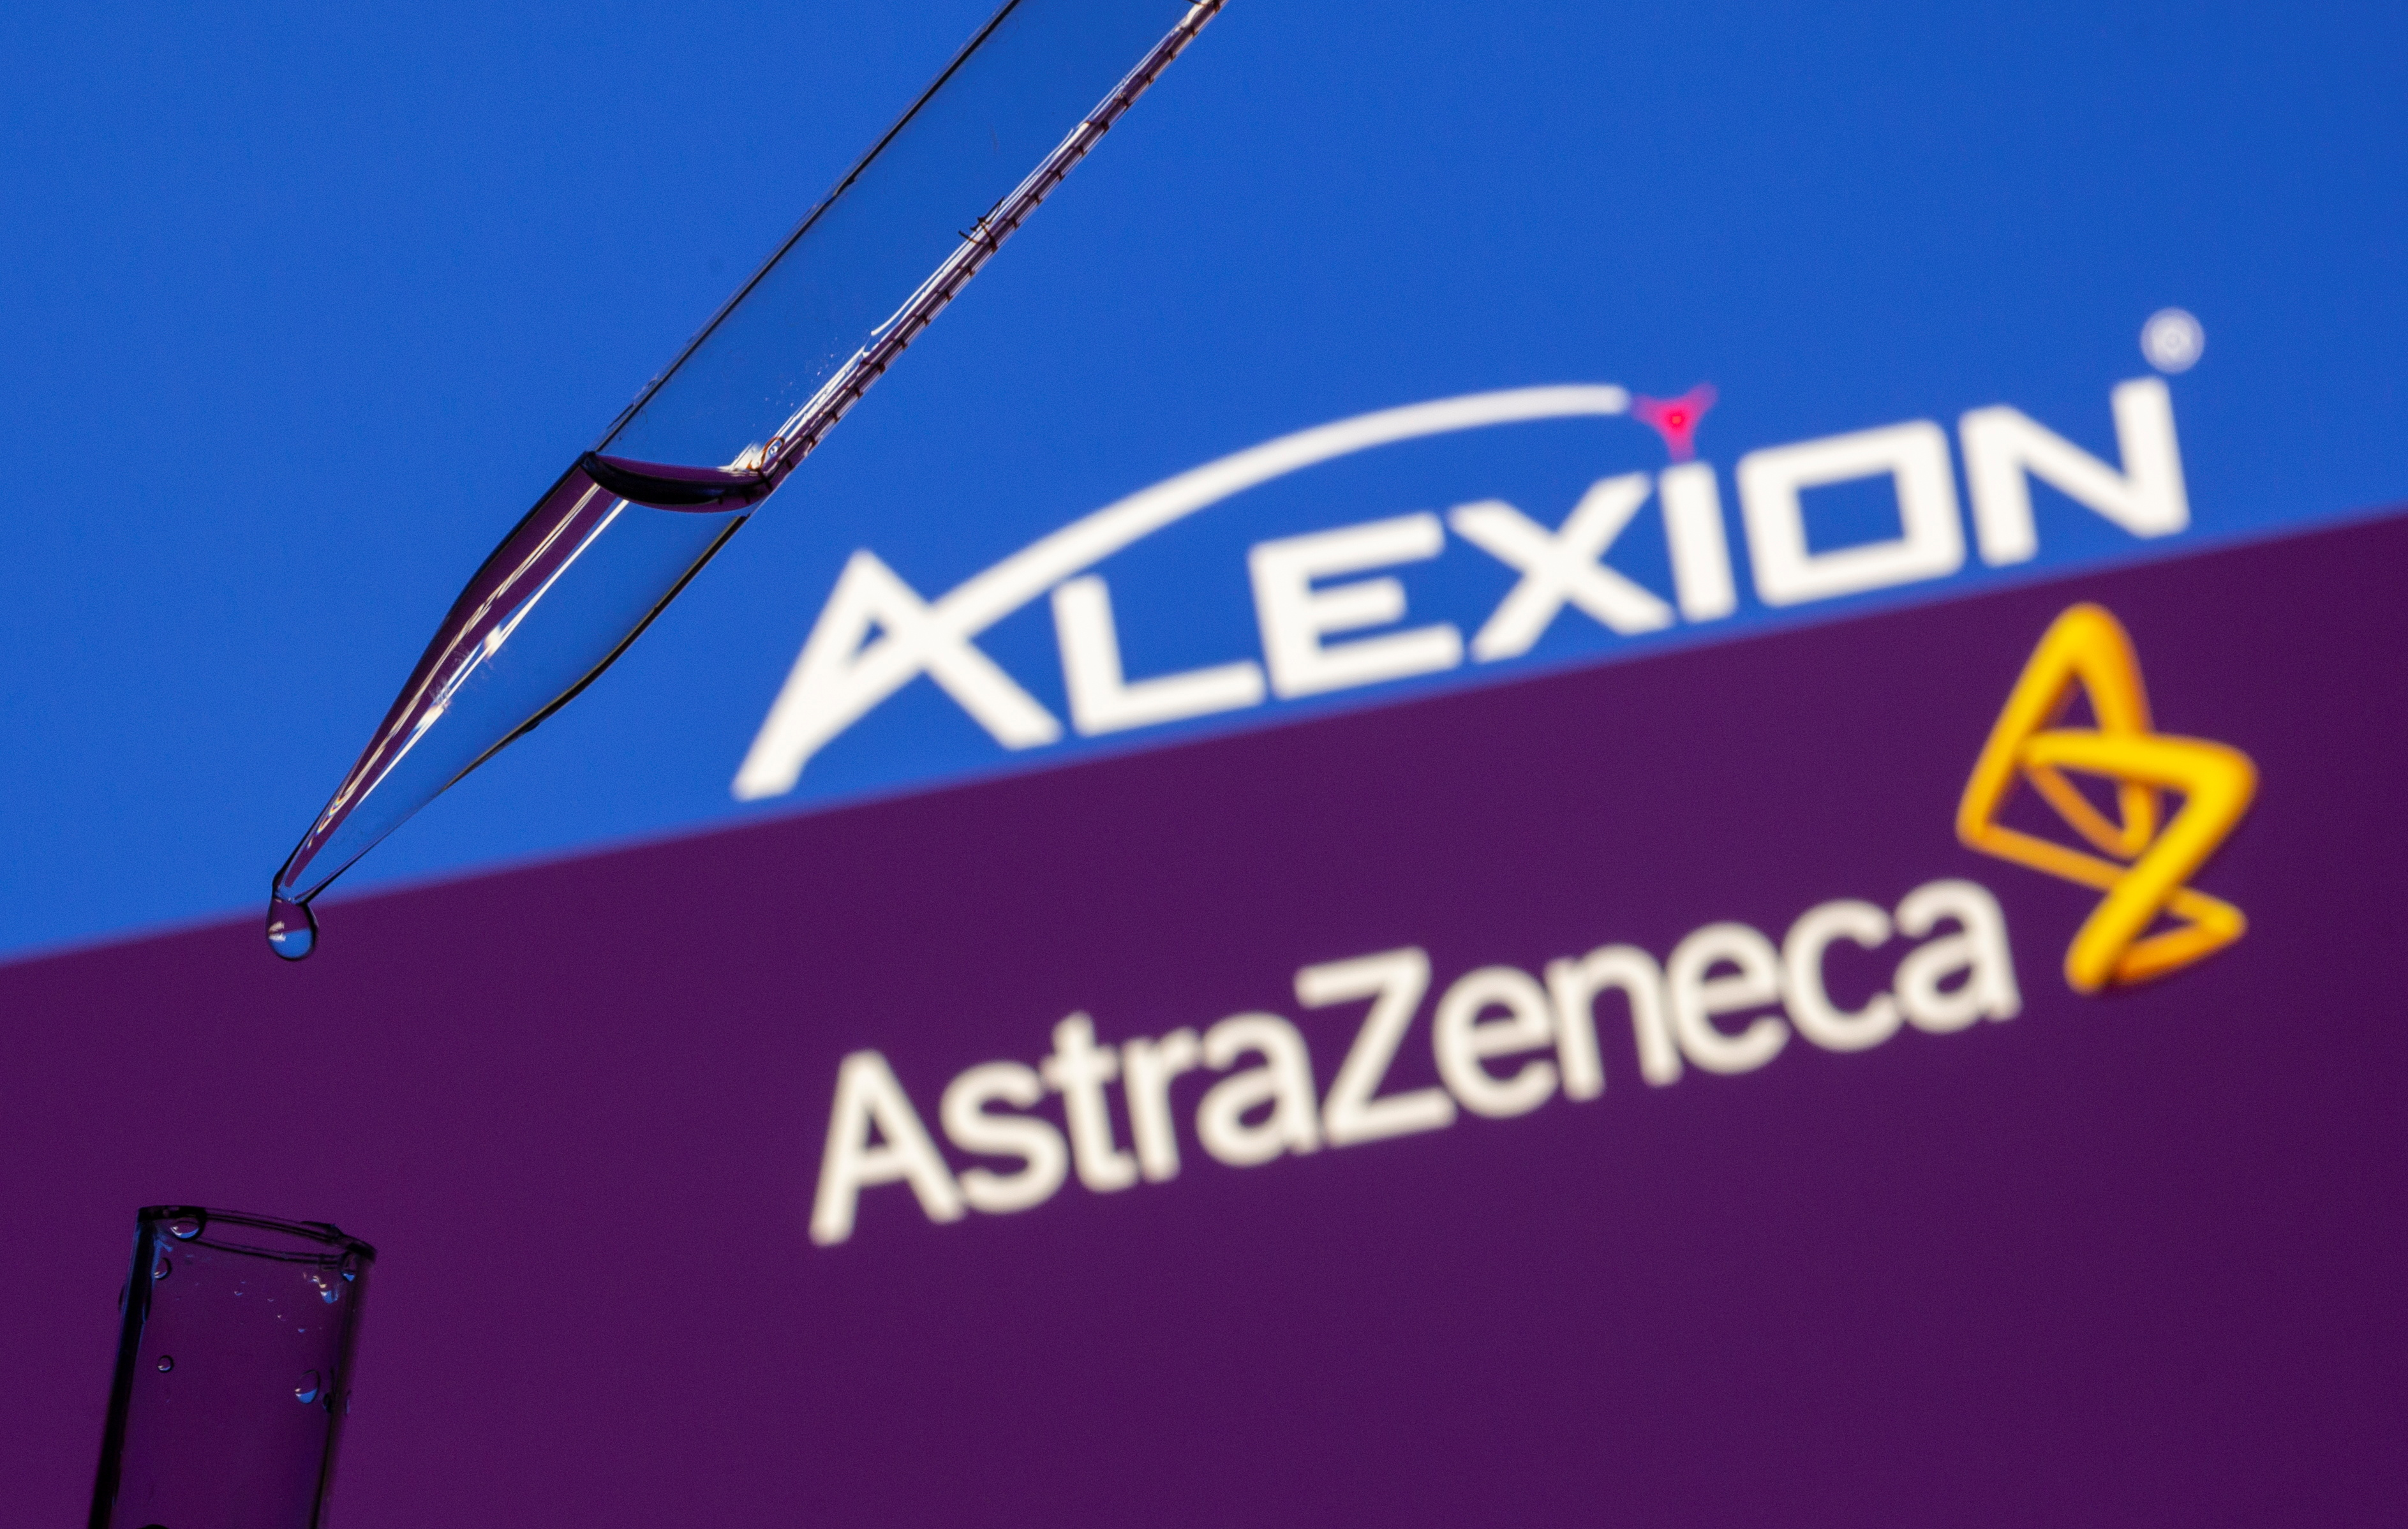 A test tube is seen in front of displayed Alexion Pharma and AstraZeneca logos in this illustration taken on July 14, 2021. REUTERS/Dado Ruvic/Illustratio